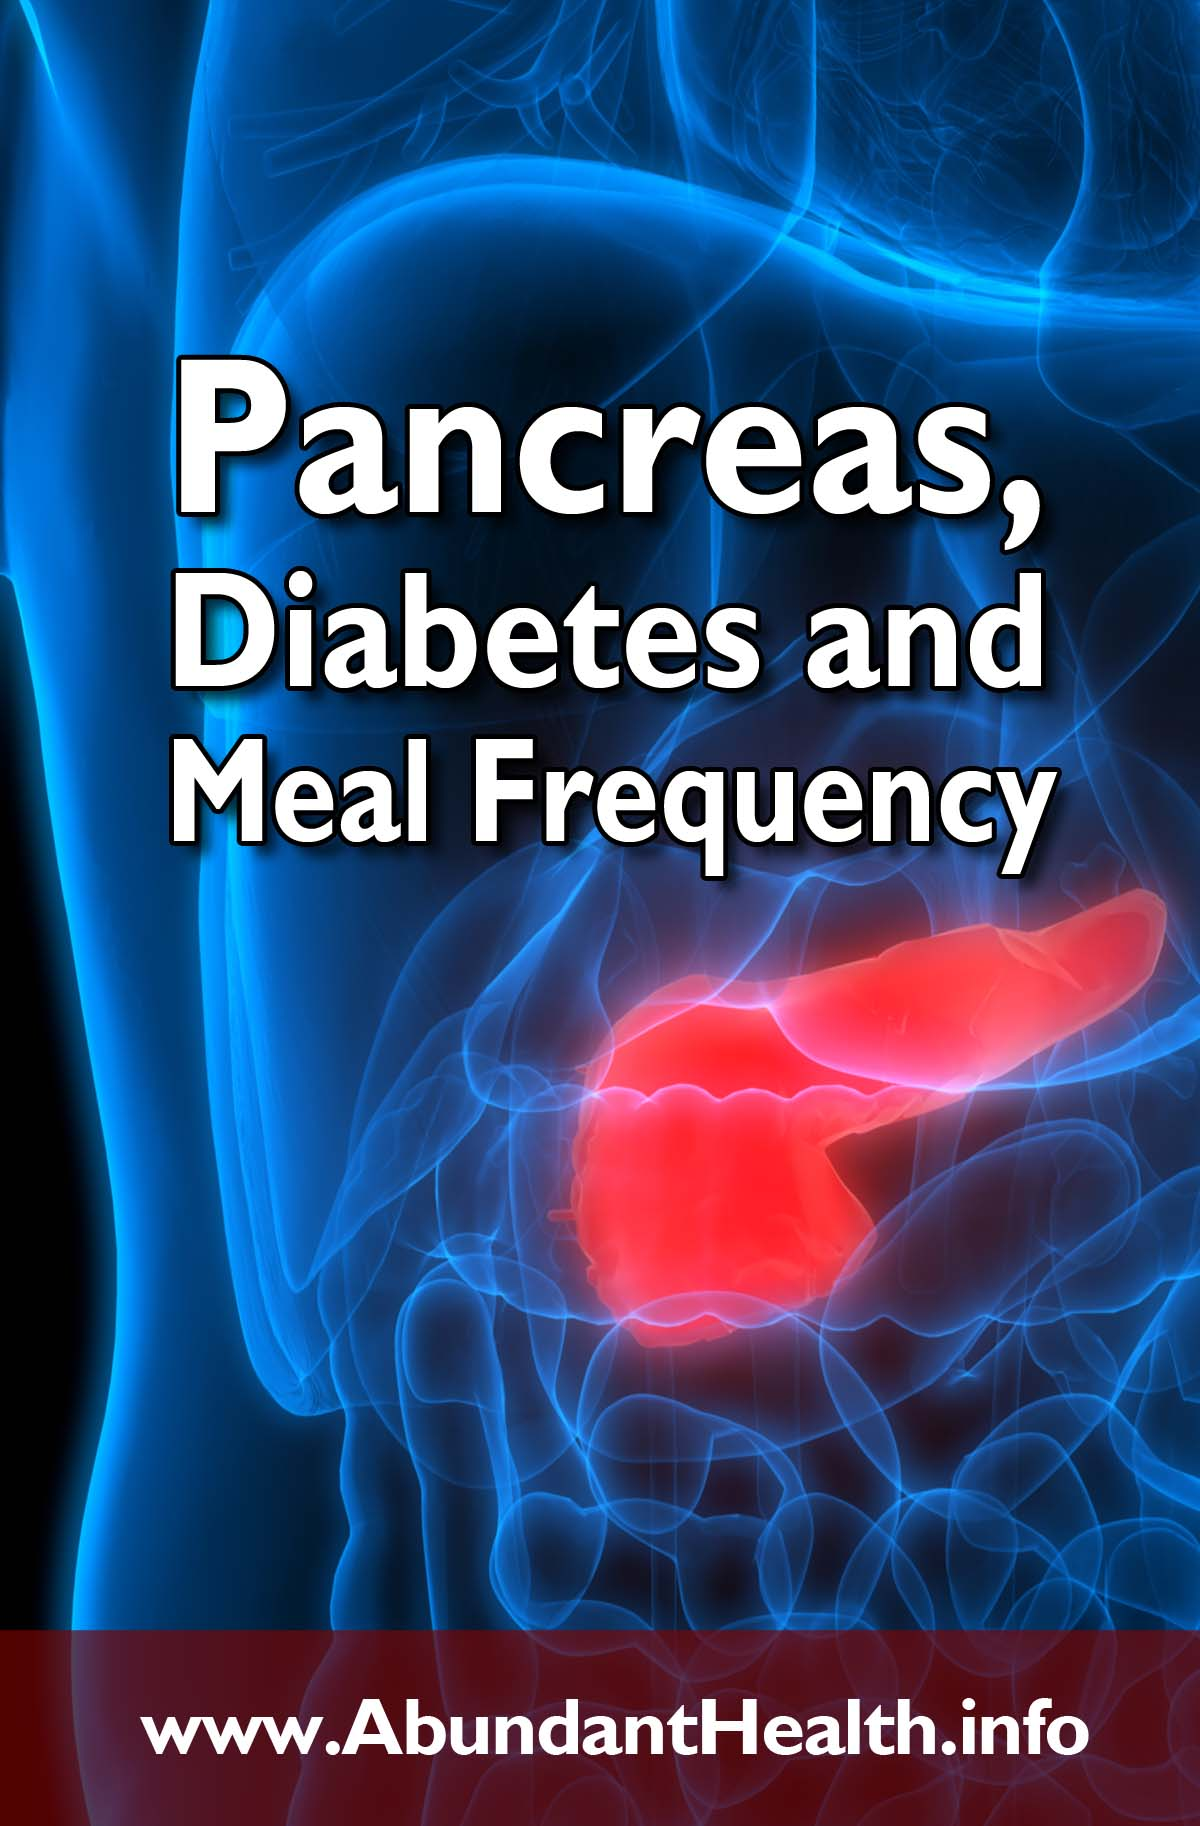 Pancreas, Diabetes and Meal Frequency